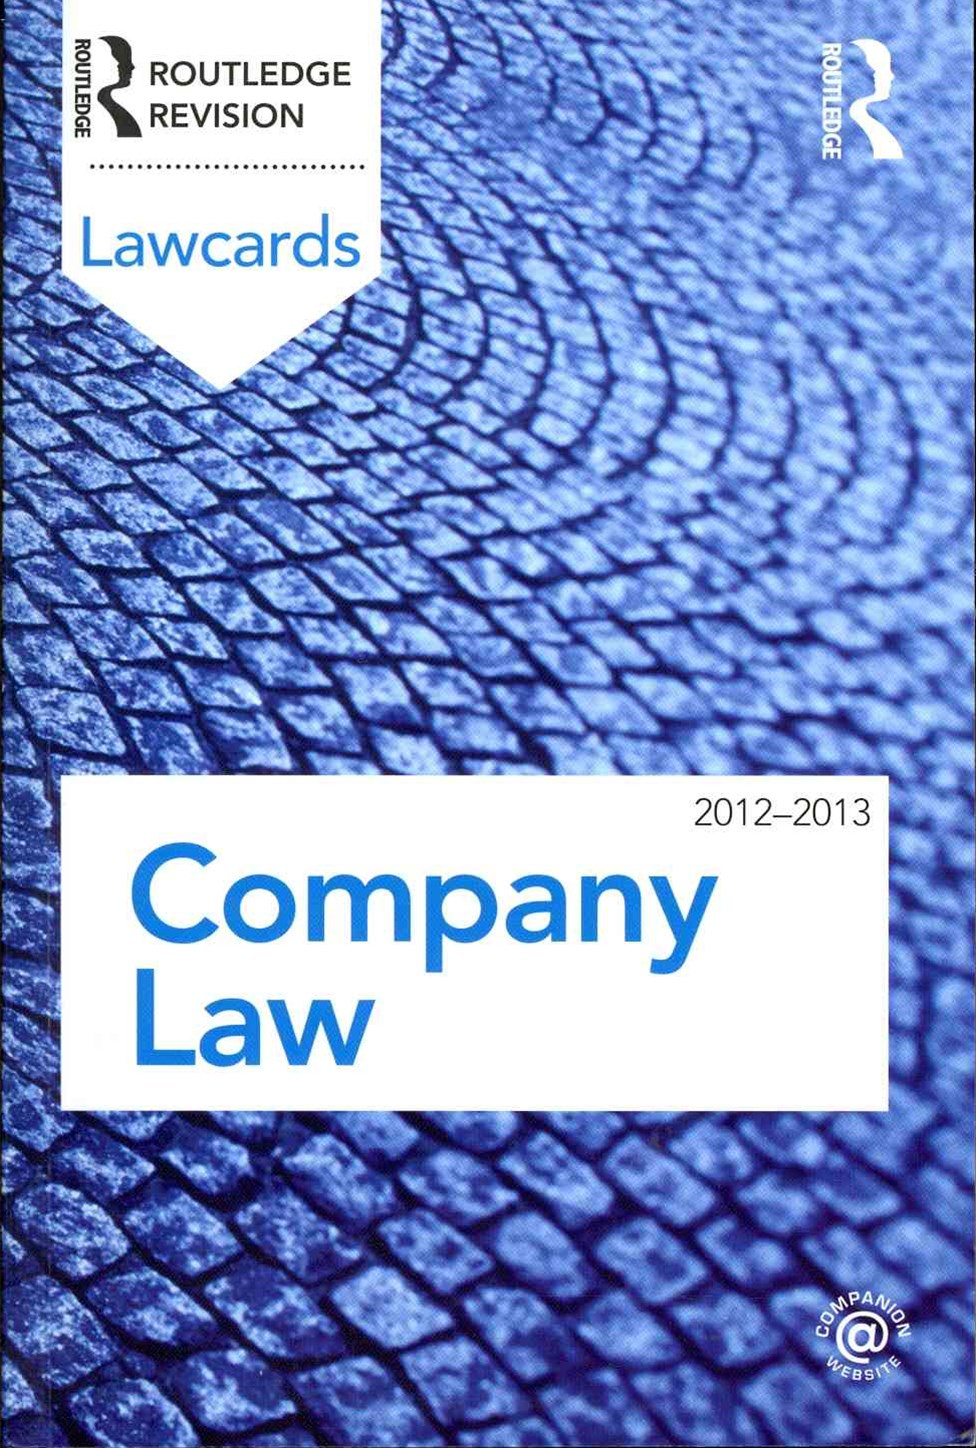 Company Lawcards 2012-2013